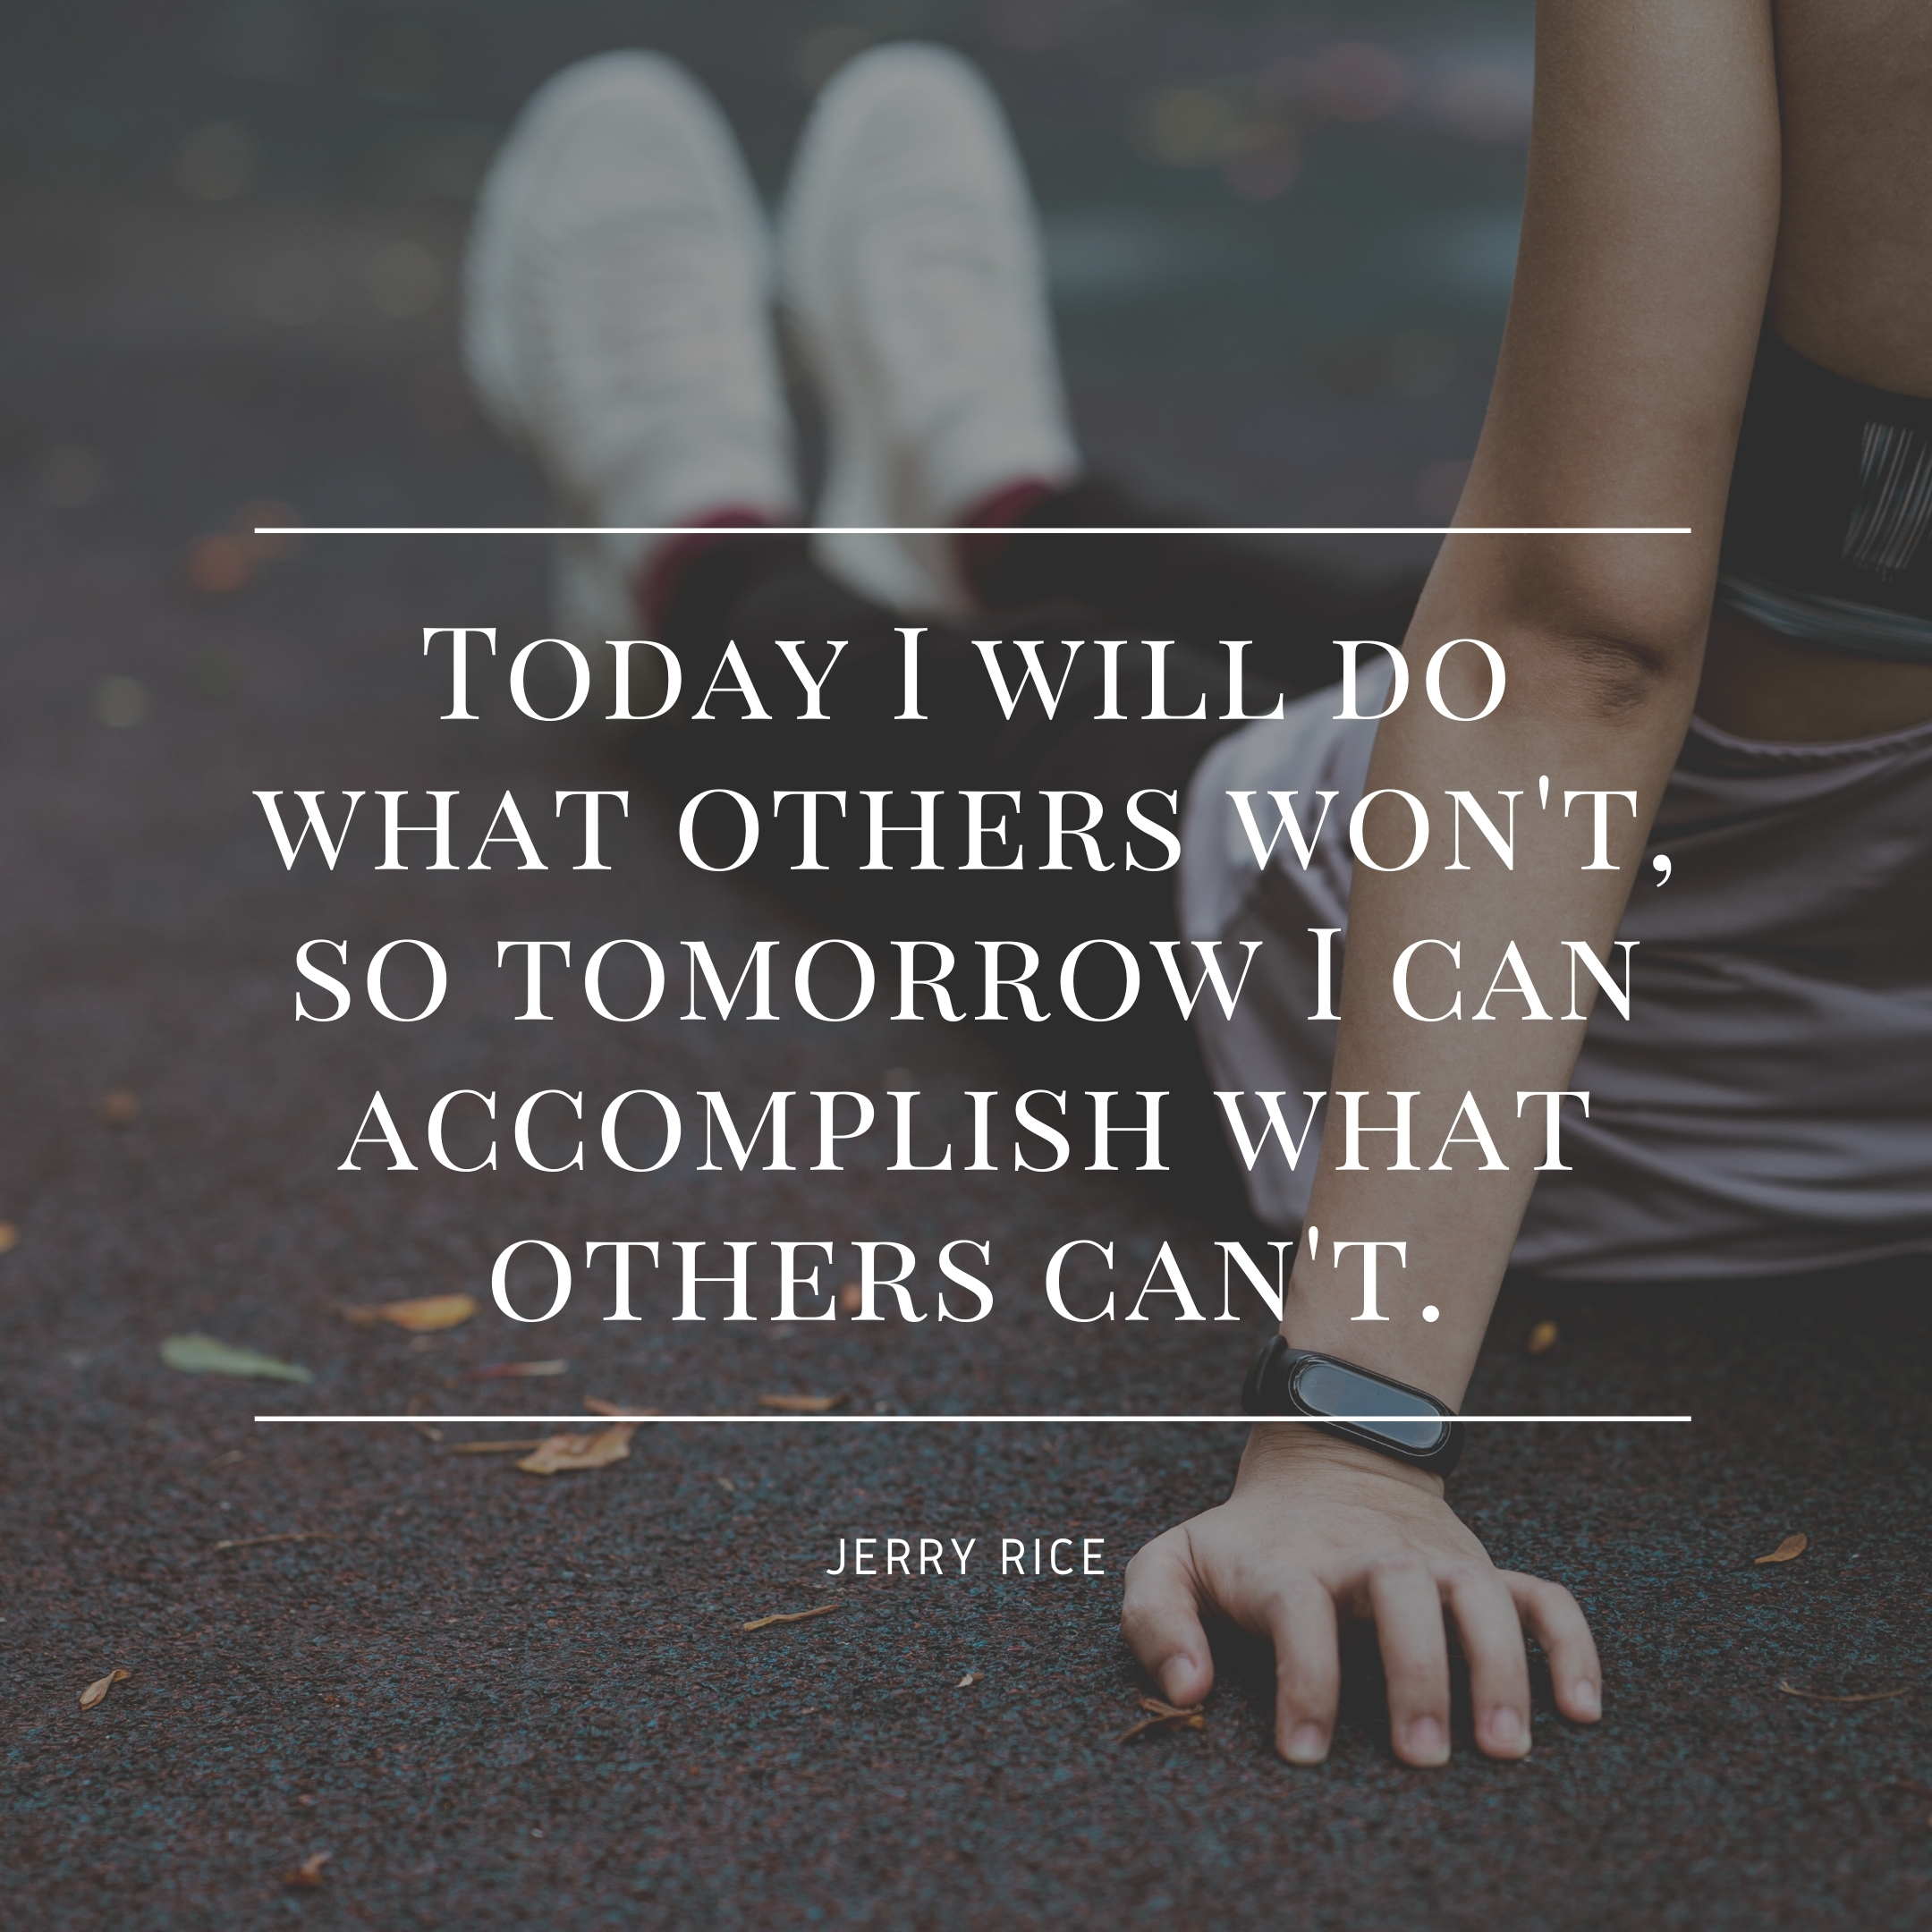 jerry rice quote   daily motivation